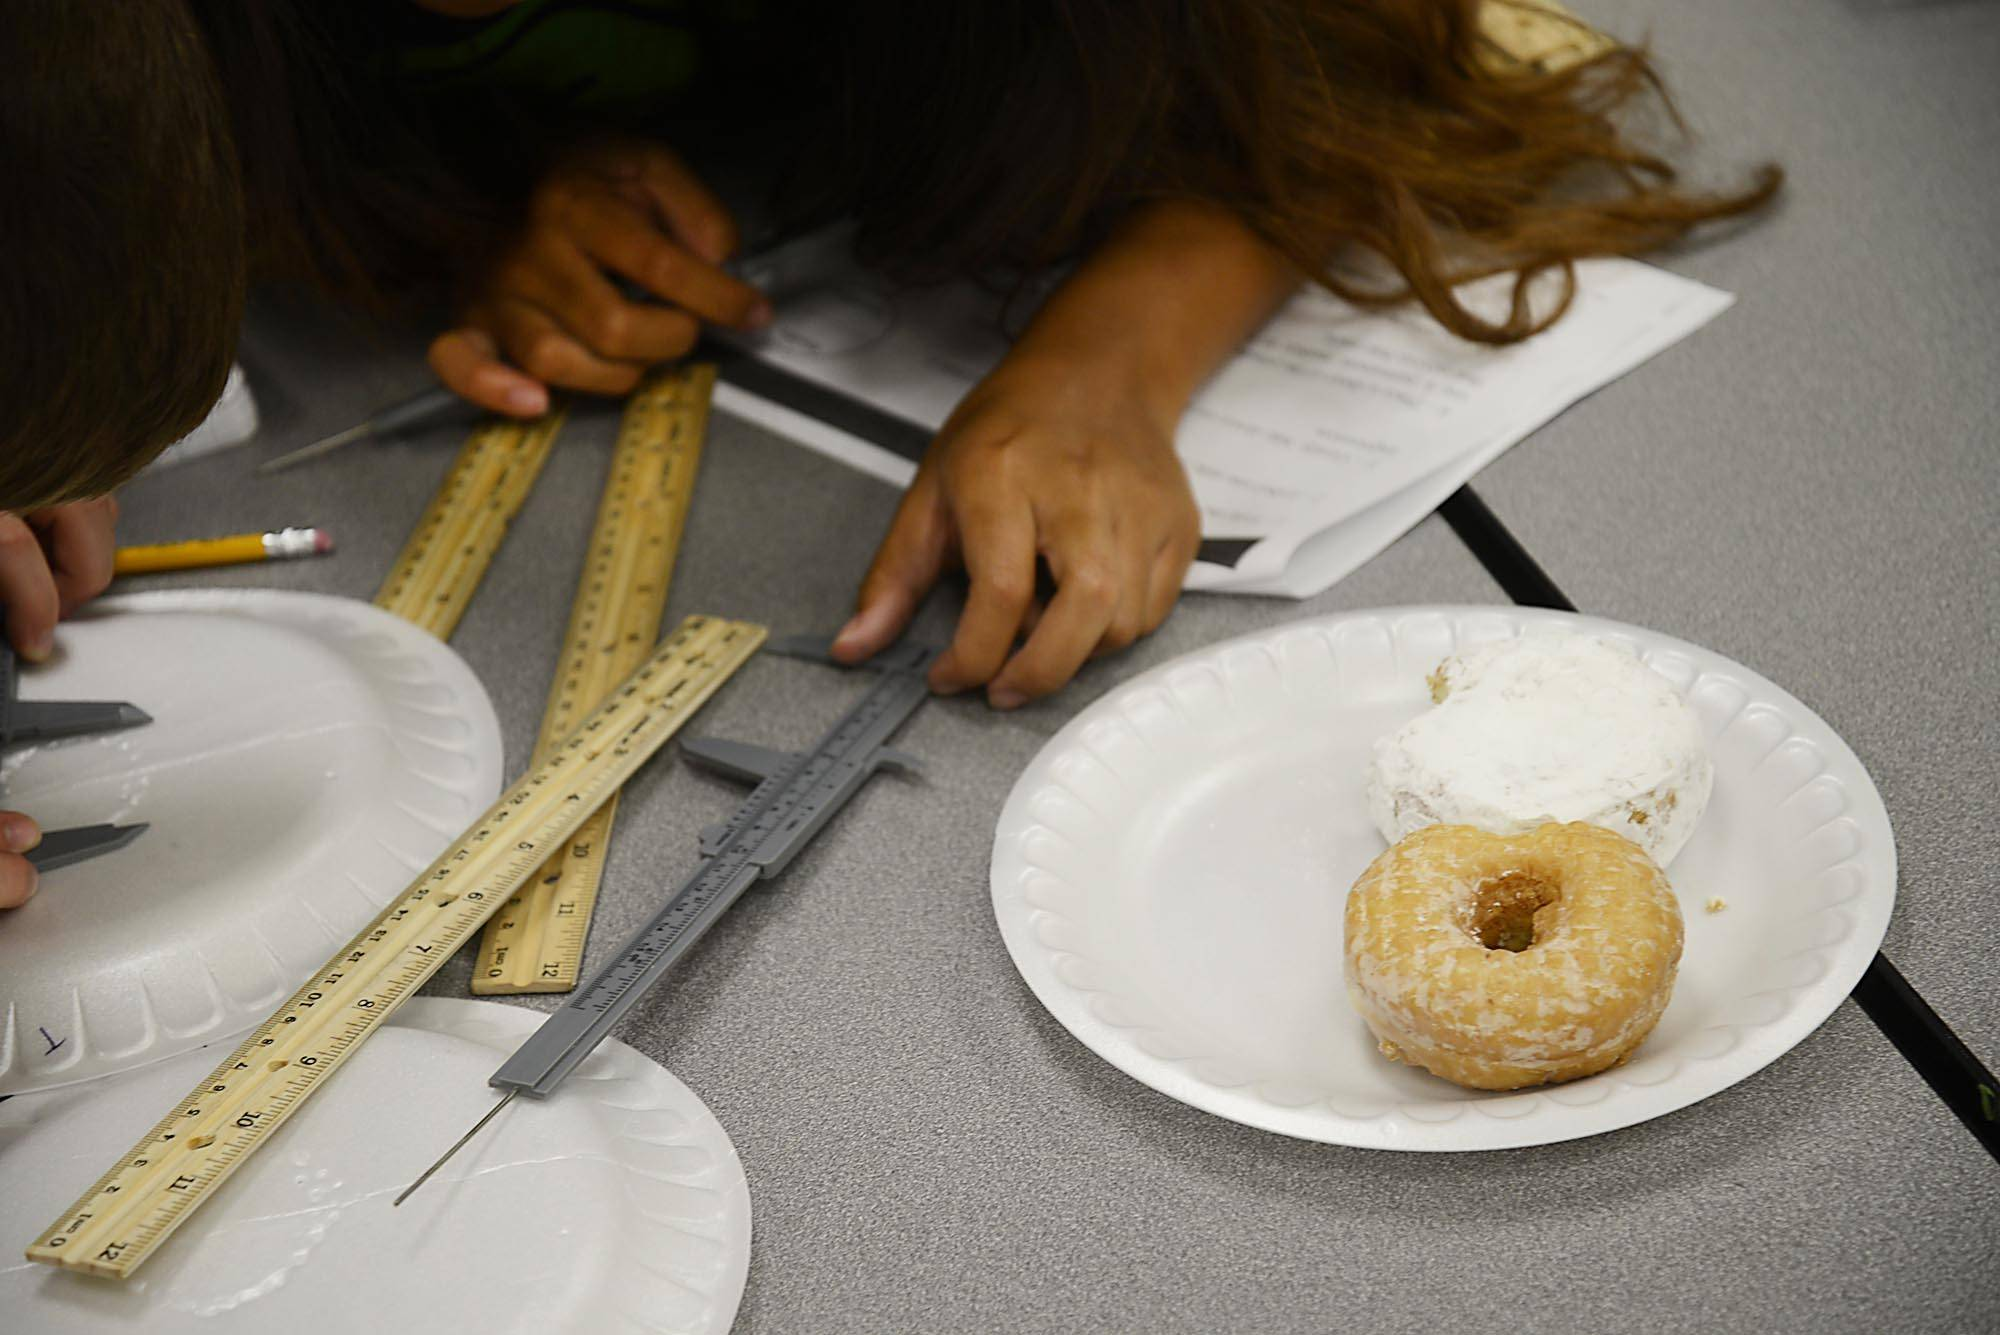 Students measure bite marks of suspects Wednesday in the case of the missing doughnuts in the CSI class of the McHenry County College summer Tech Camp in Crystal Lake.